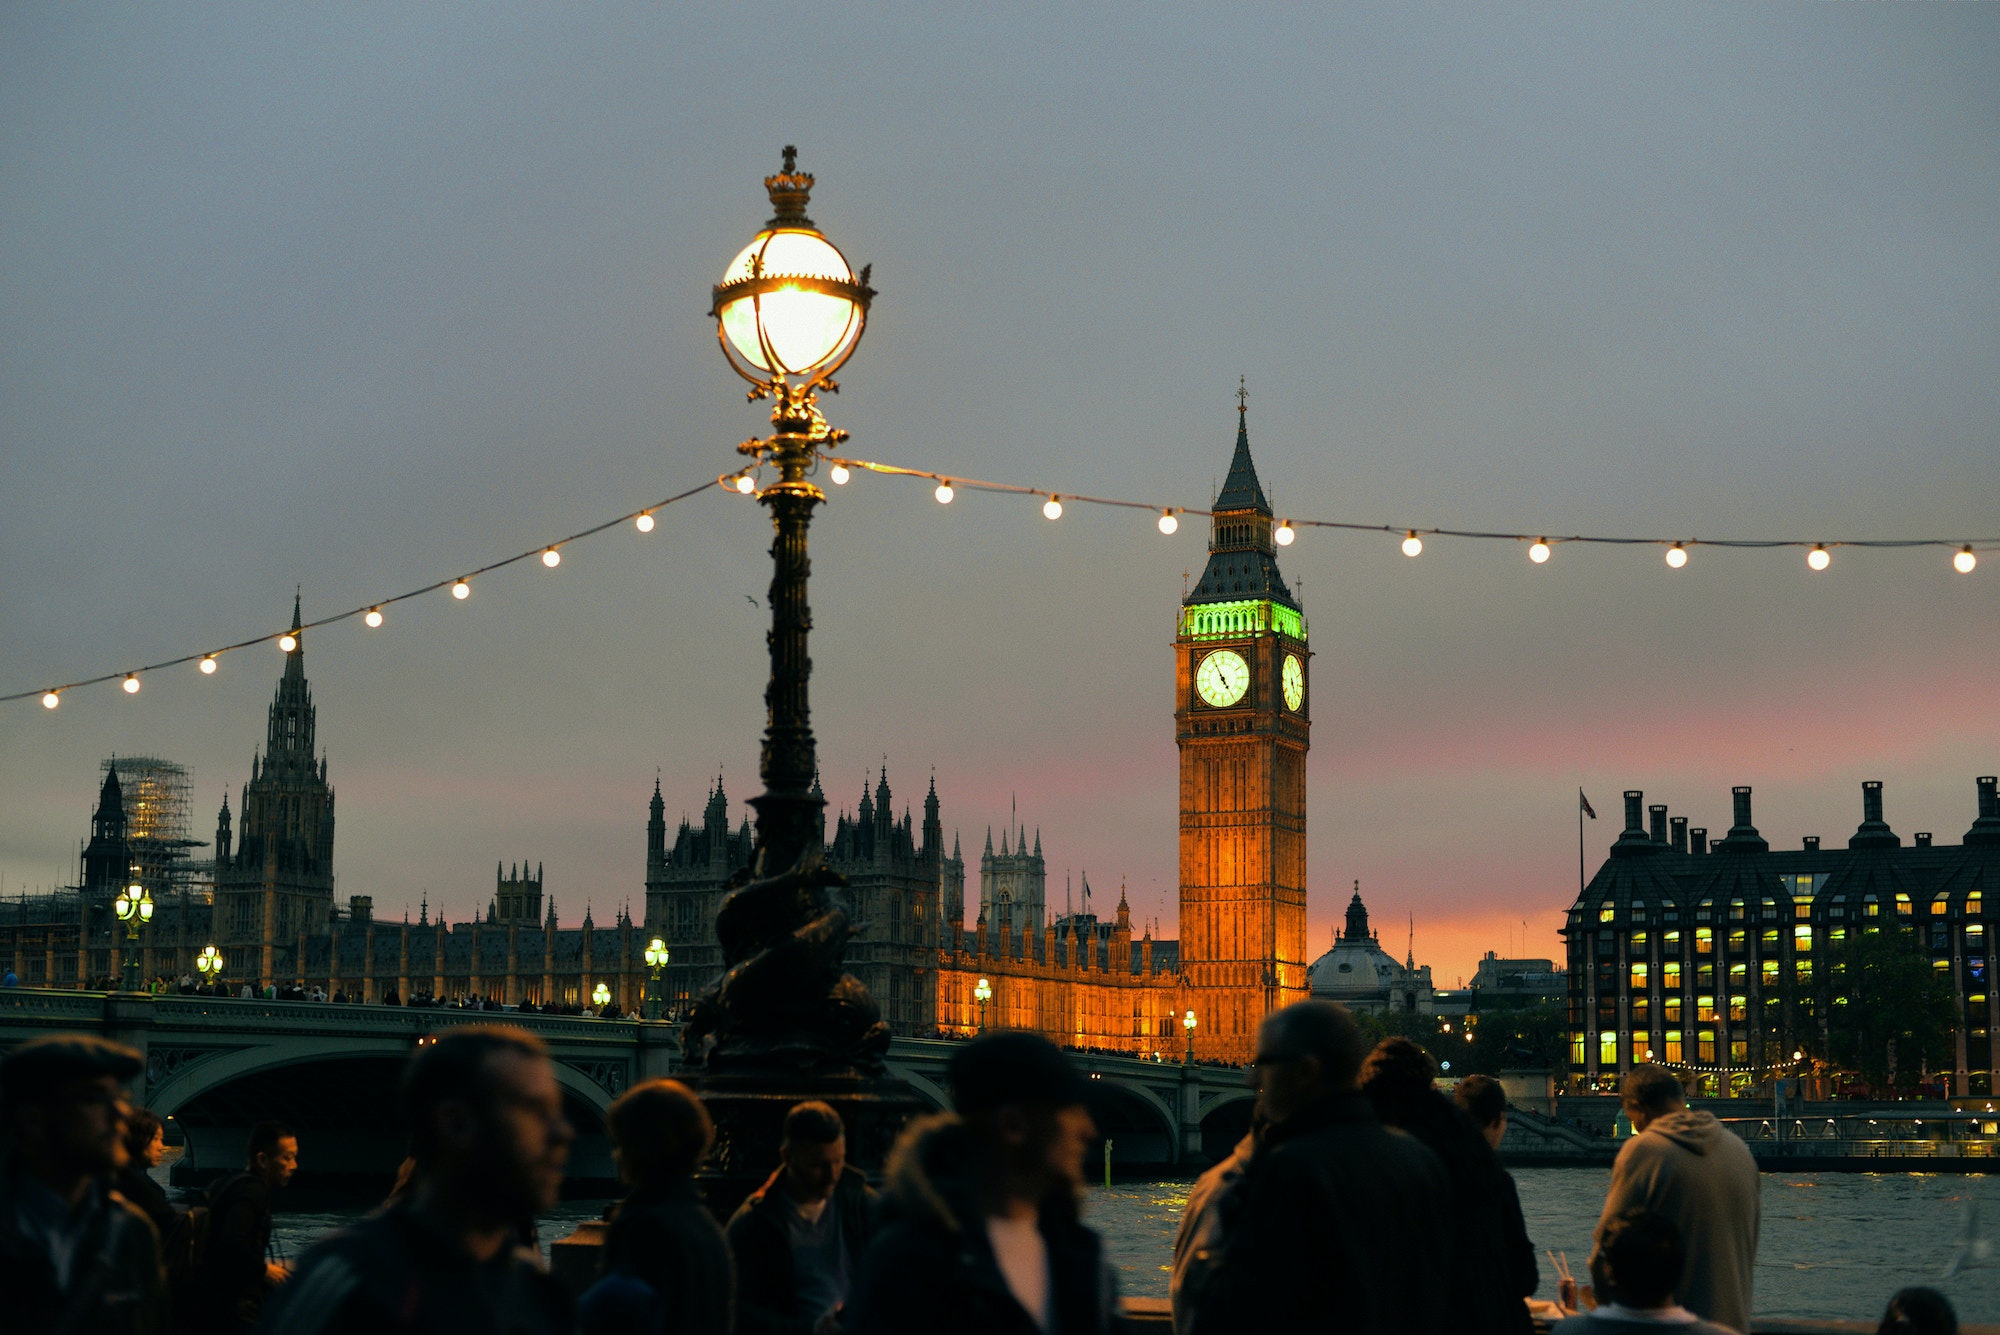 e5e3c1a85fc9 A serious London itinerary must have a view of dear old Big Ben and the  Thames